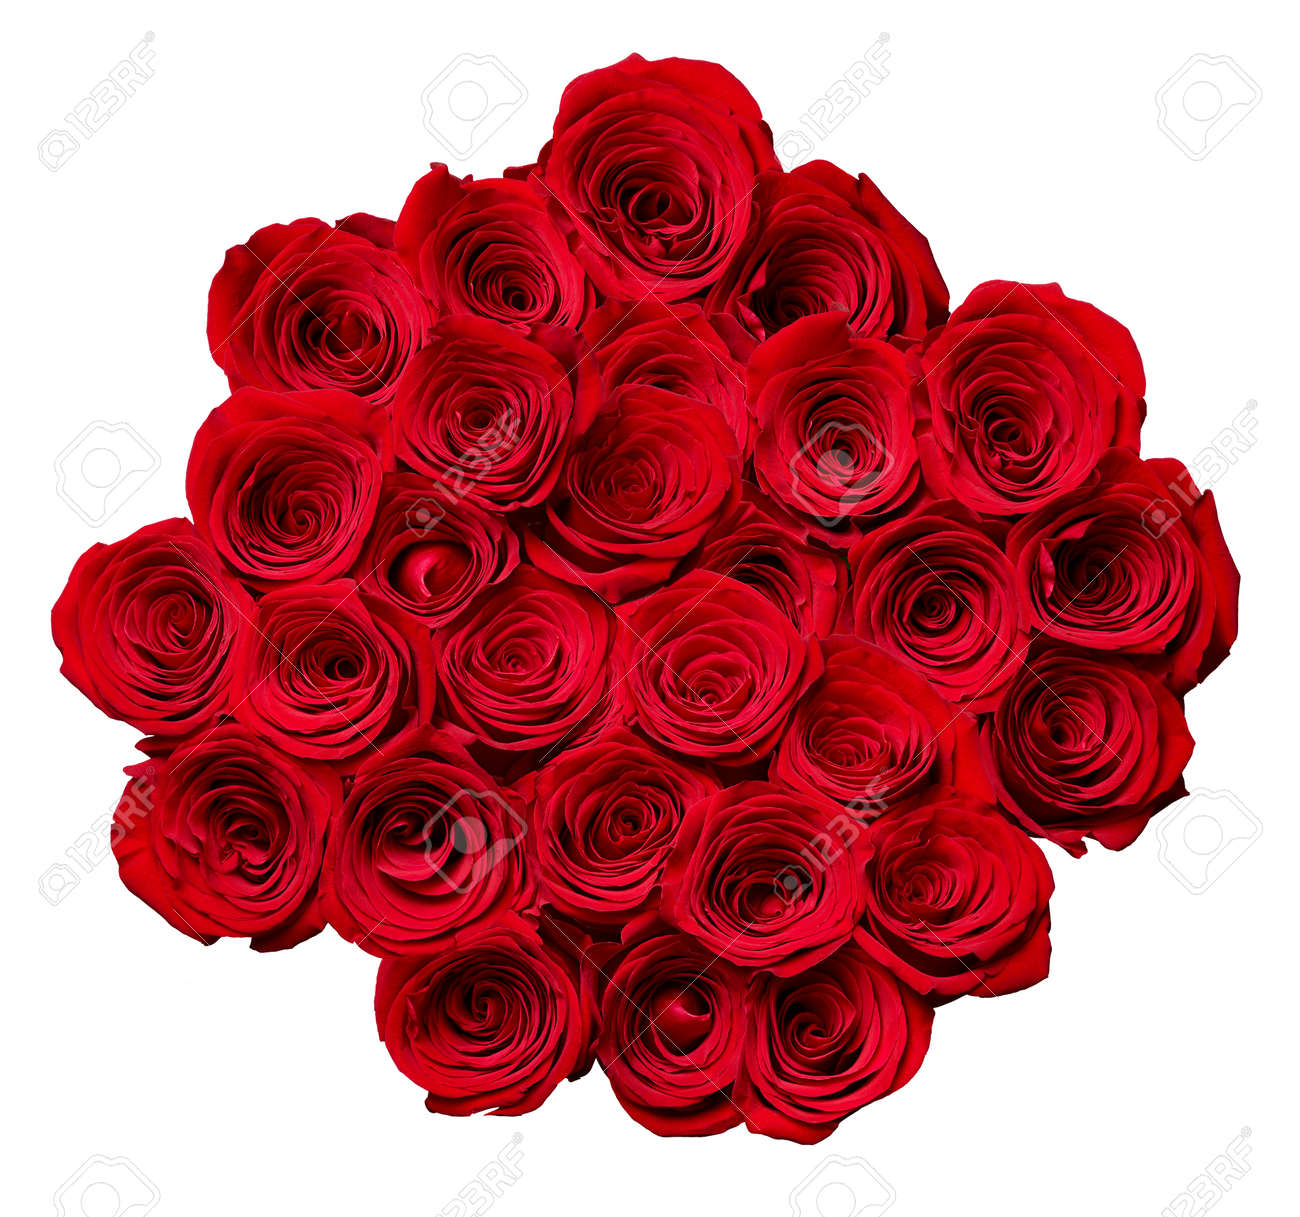 close up of roses on white background - 131759044